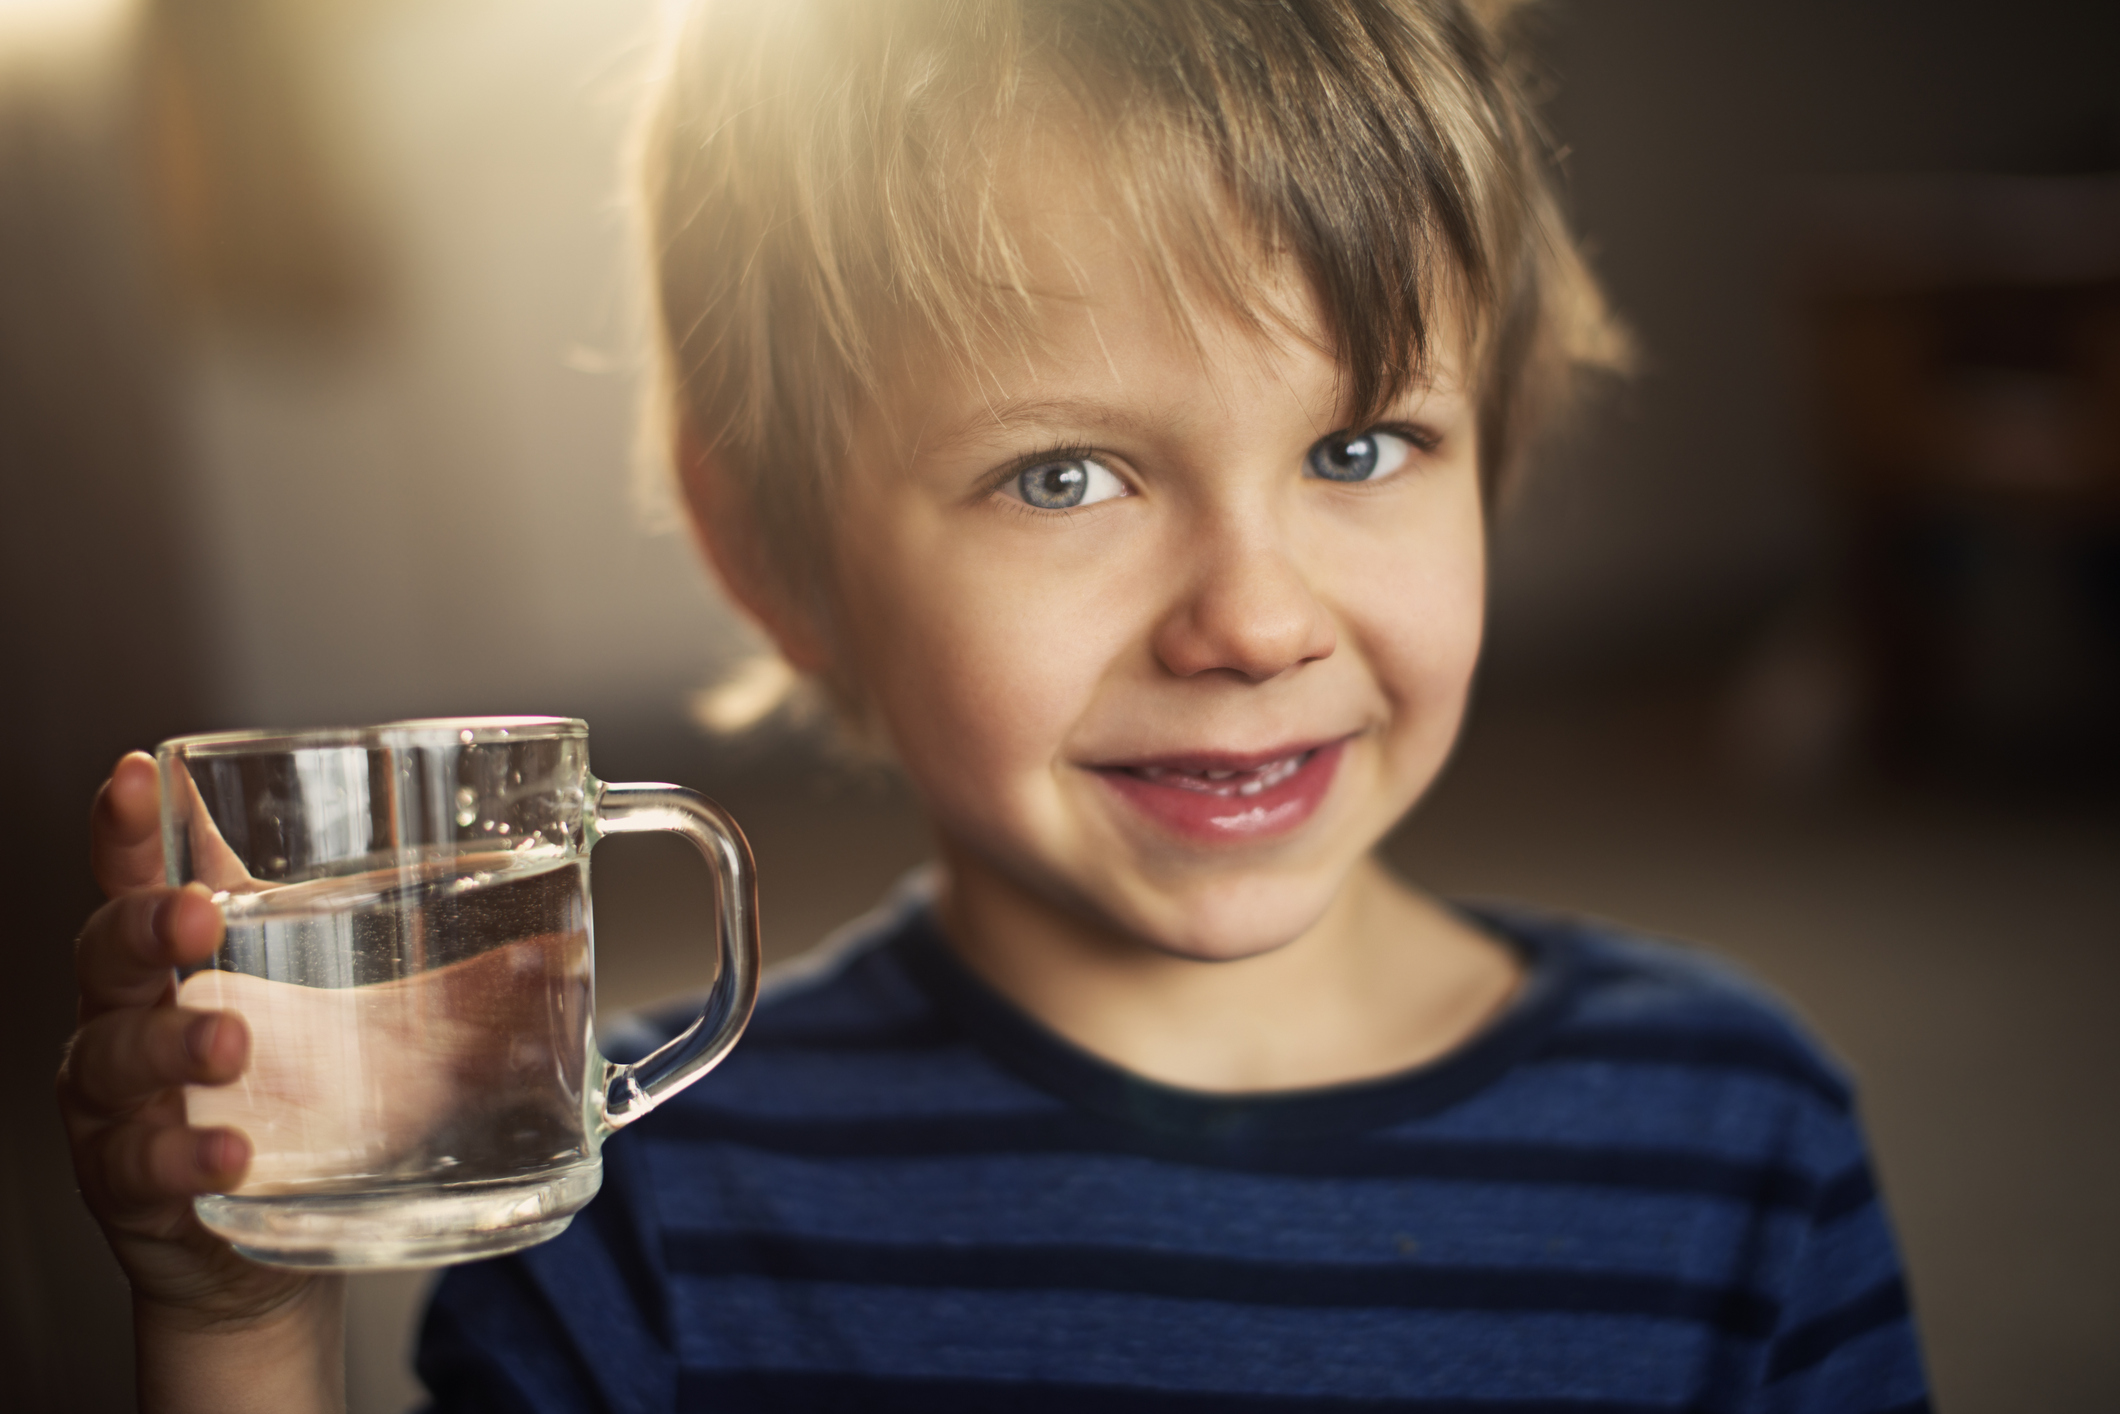 Closeup portrait of a little boy holding a glass of water. The boy is wearning blue blouse and smiling to the camera. The boy is aged 5 and is backlit by the morning sun from the window behind him.